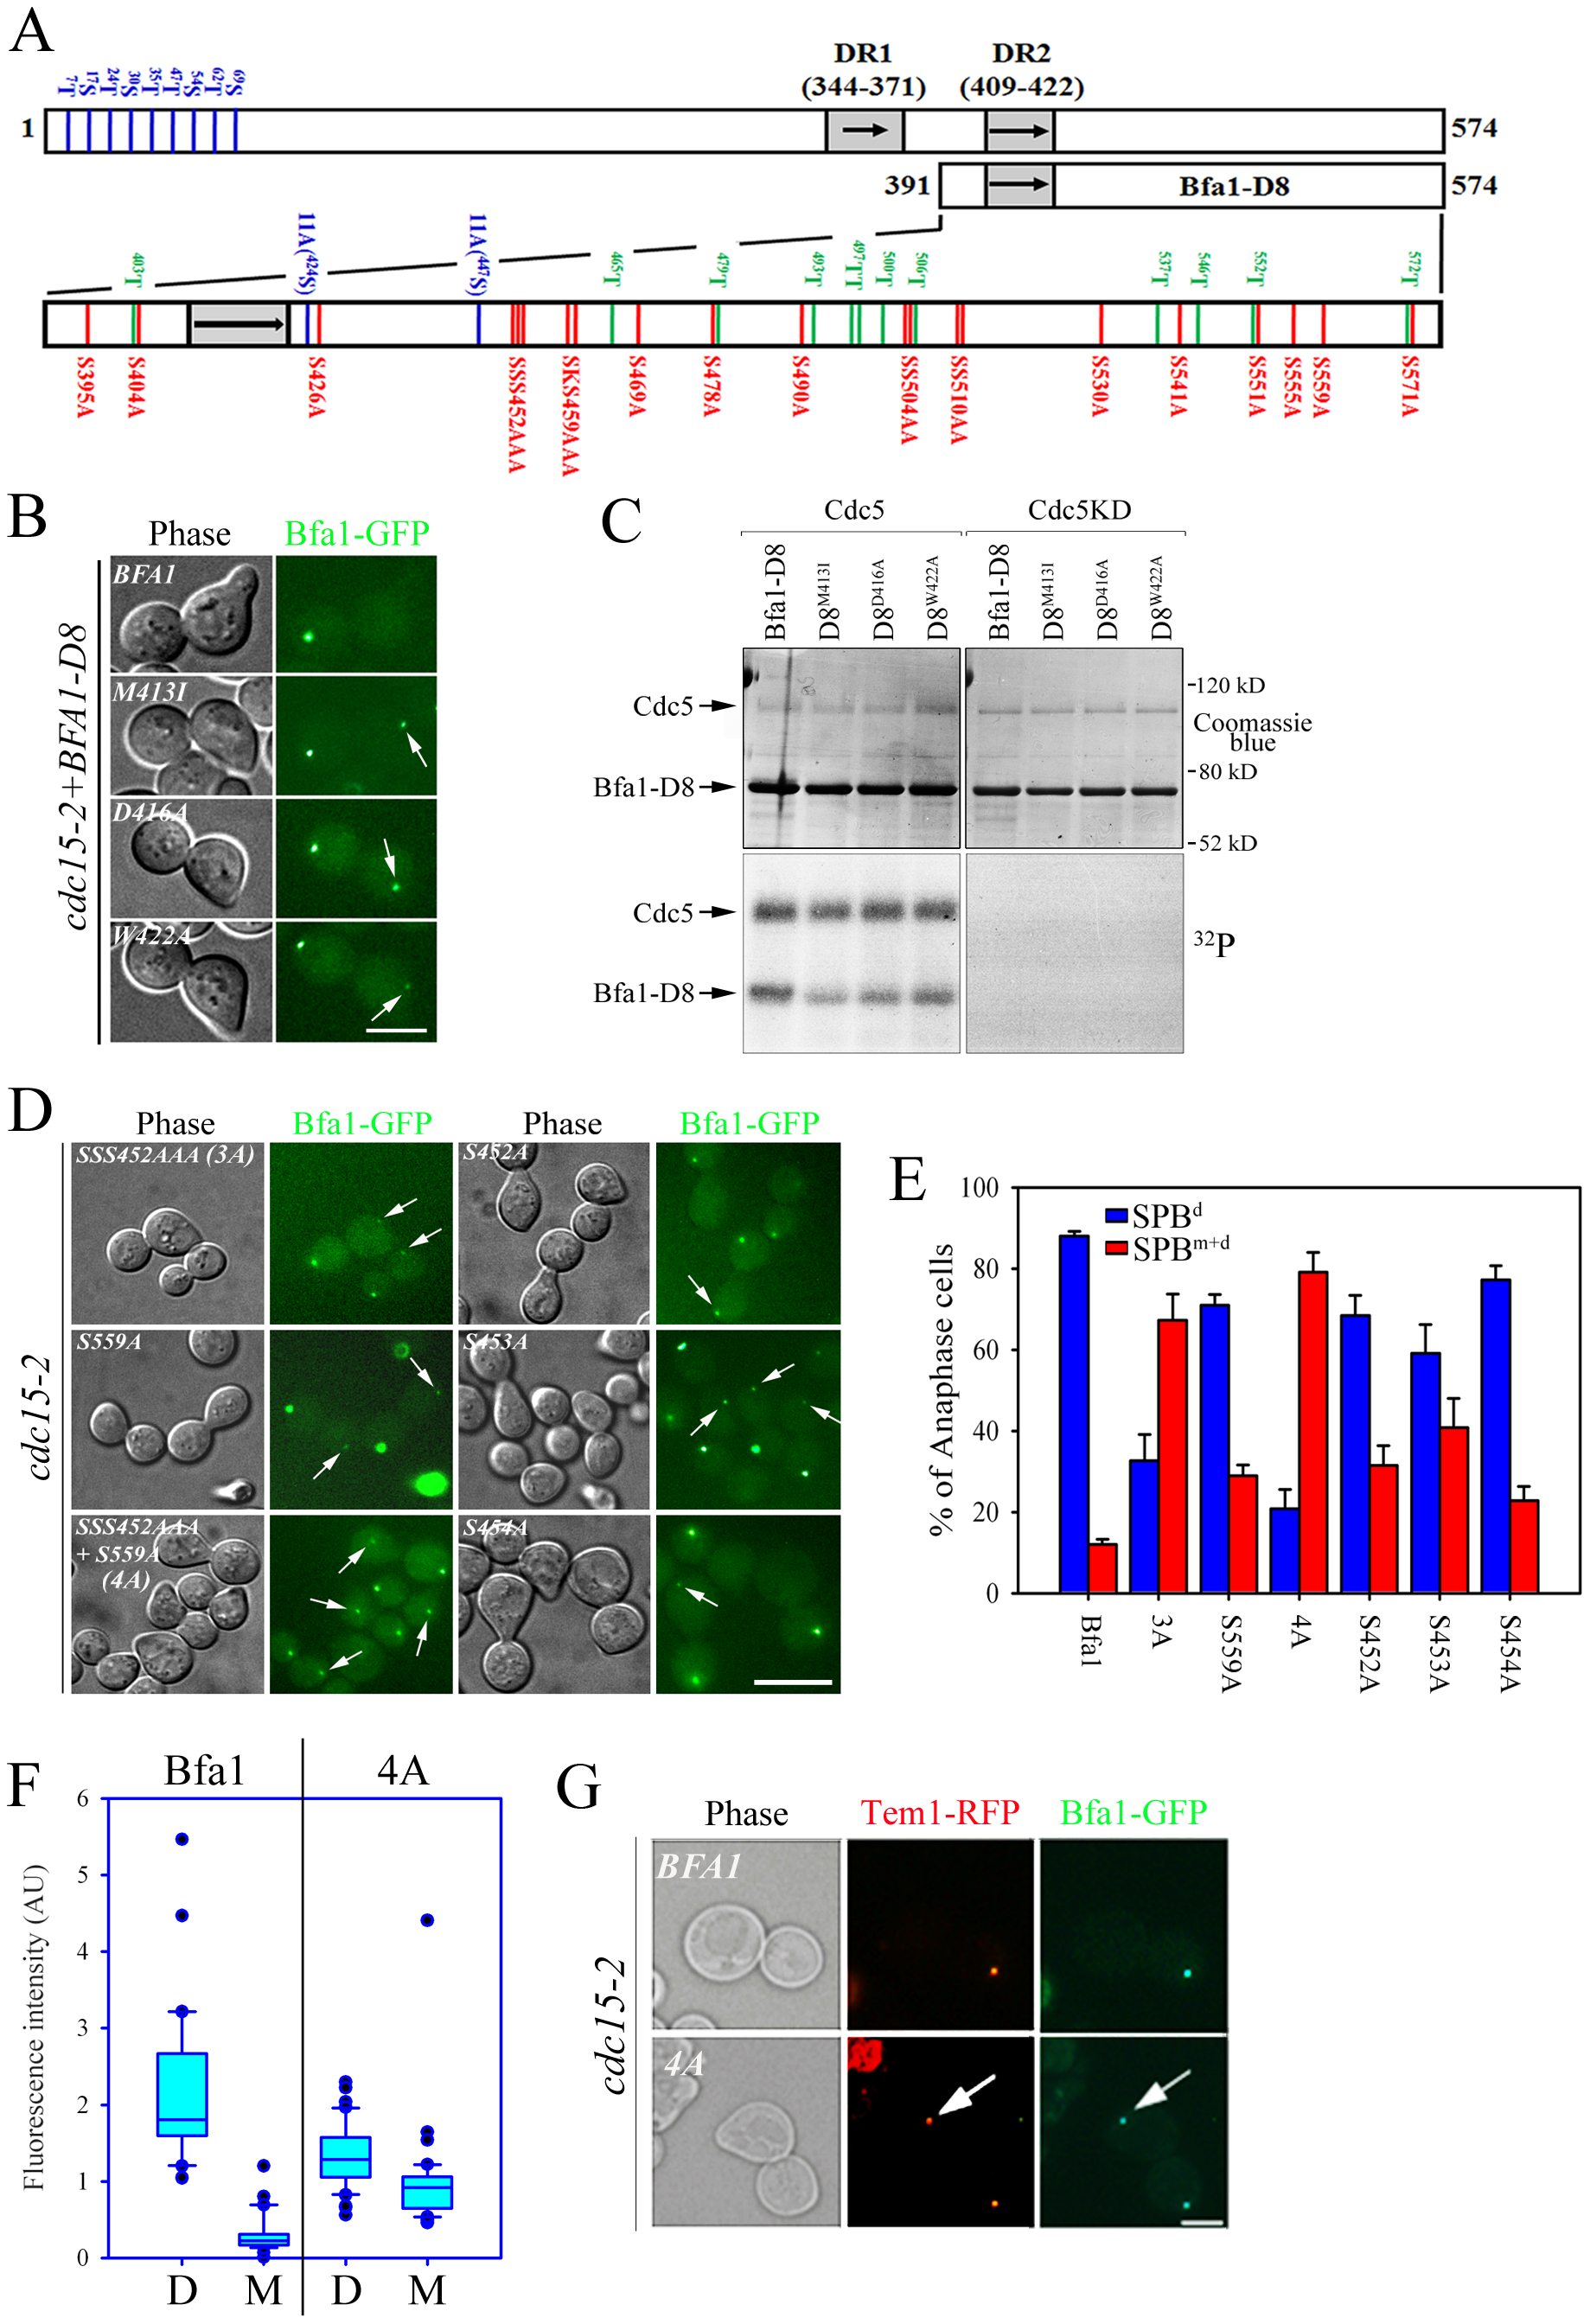 Identification of putative phosphosite(s) regulating the asymmetric localization of Bfa1.